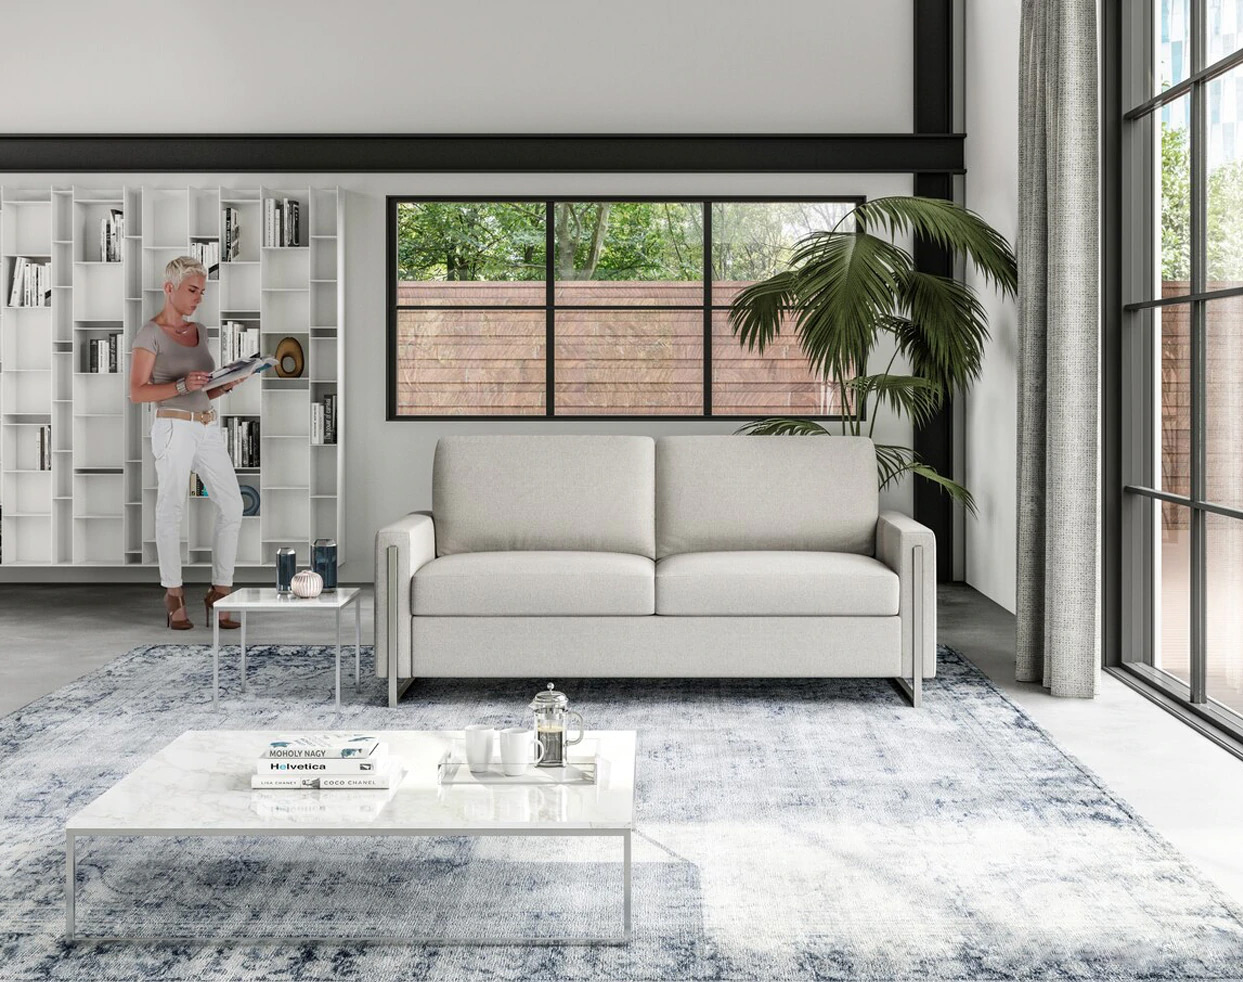 Sulley Convertible Comfort Sleeper Sofa in Lifestyle